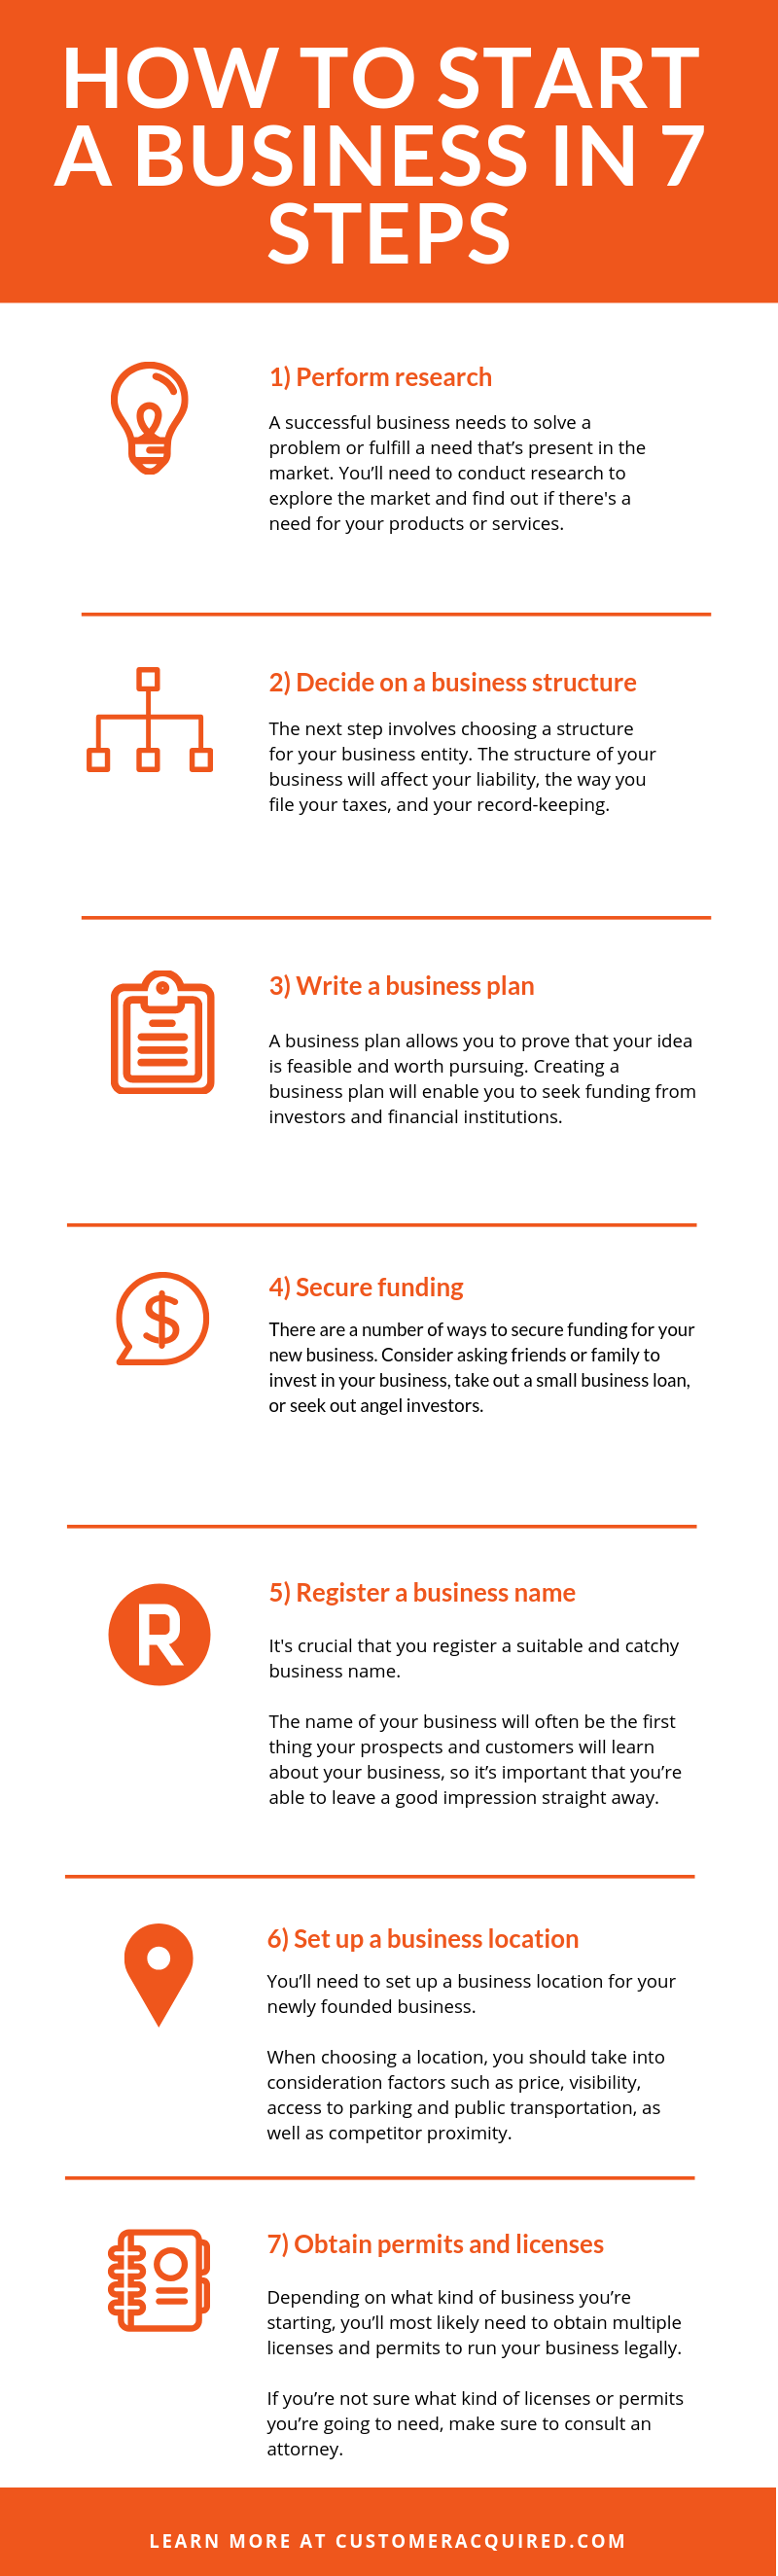 Learn how to start a business in 7 steps